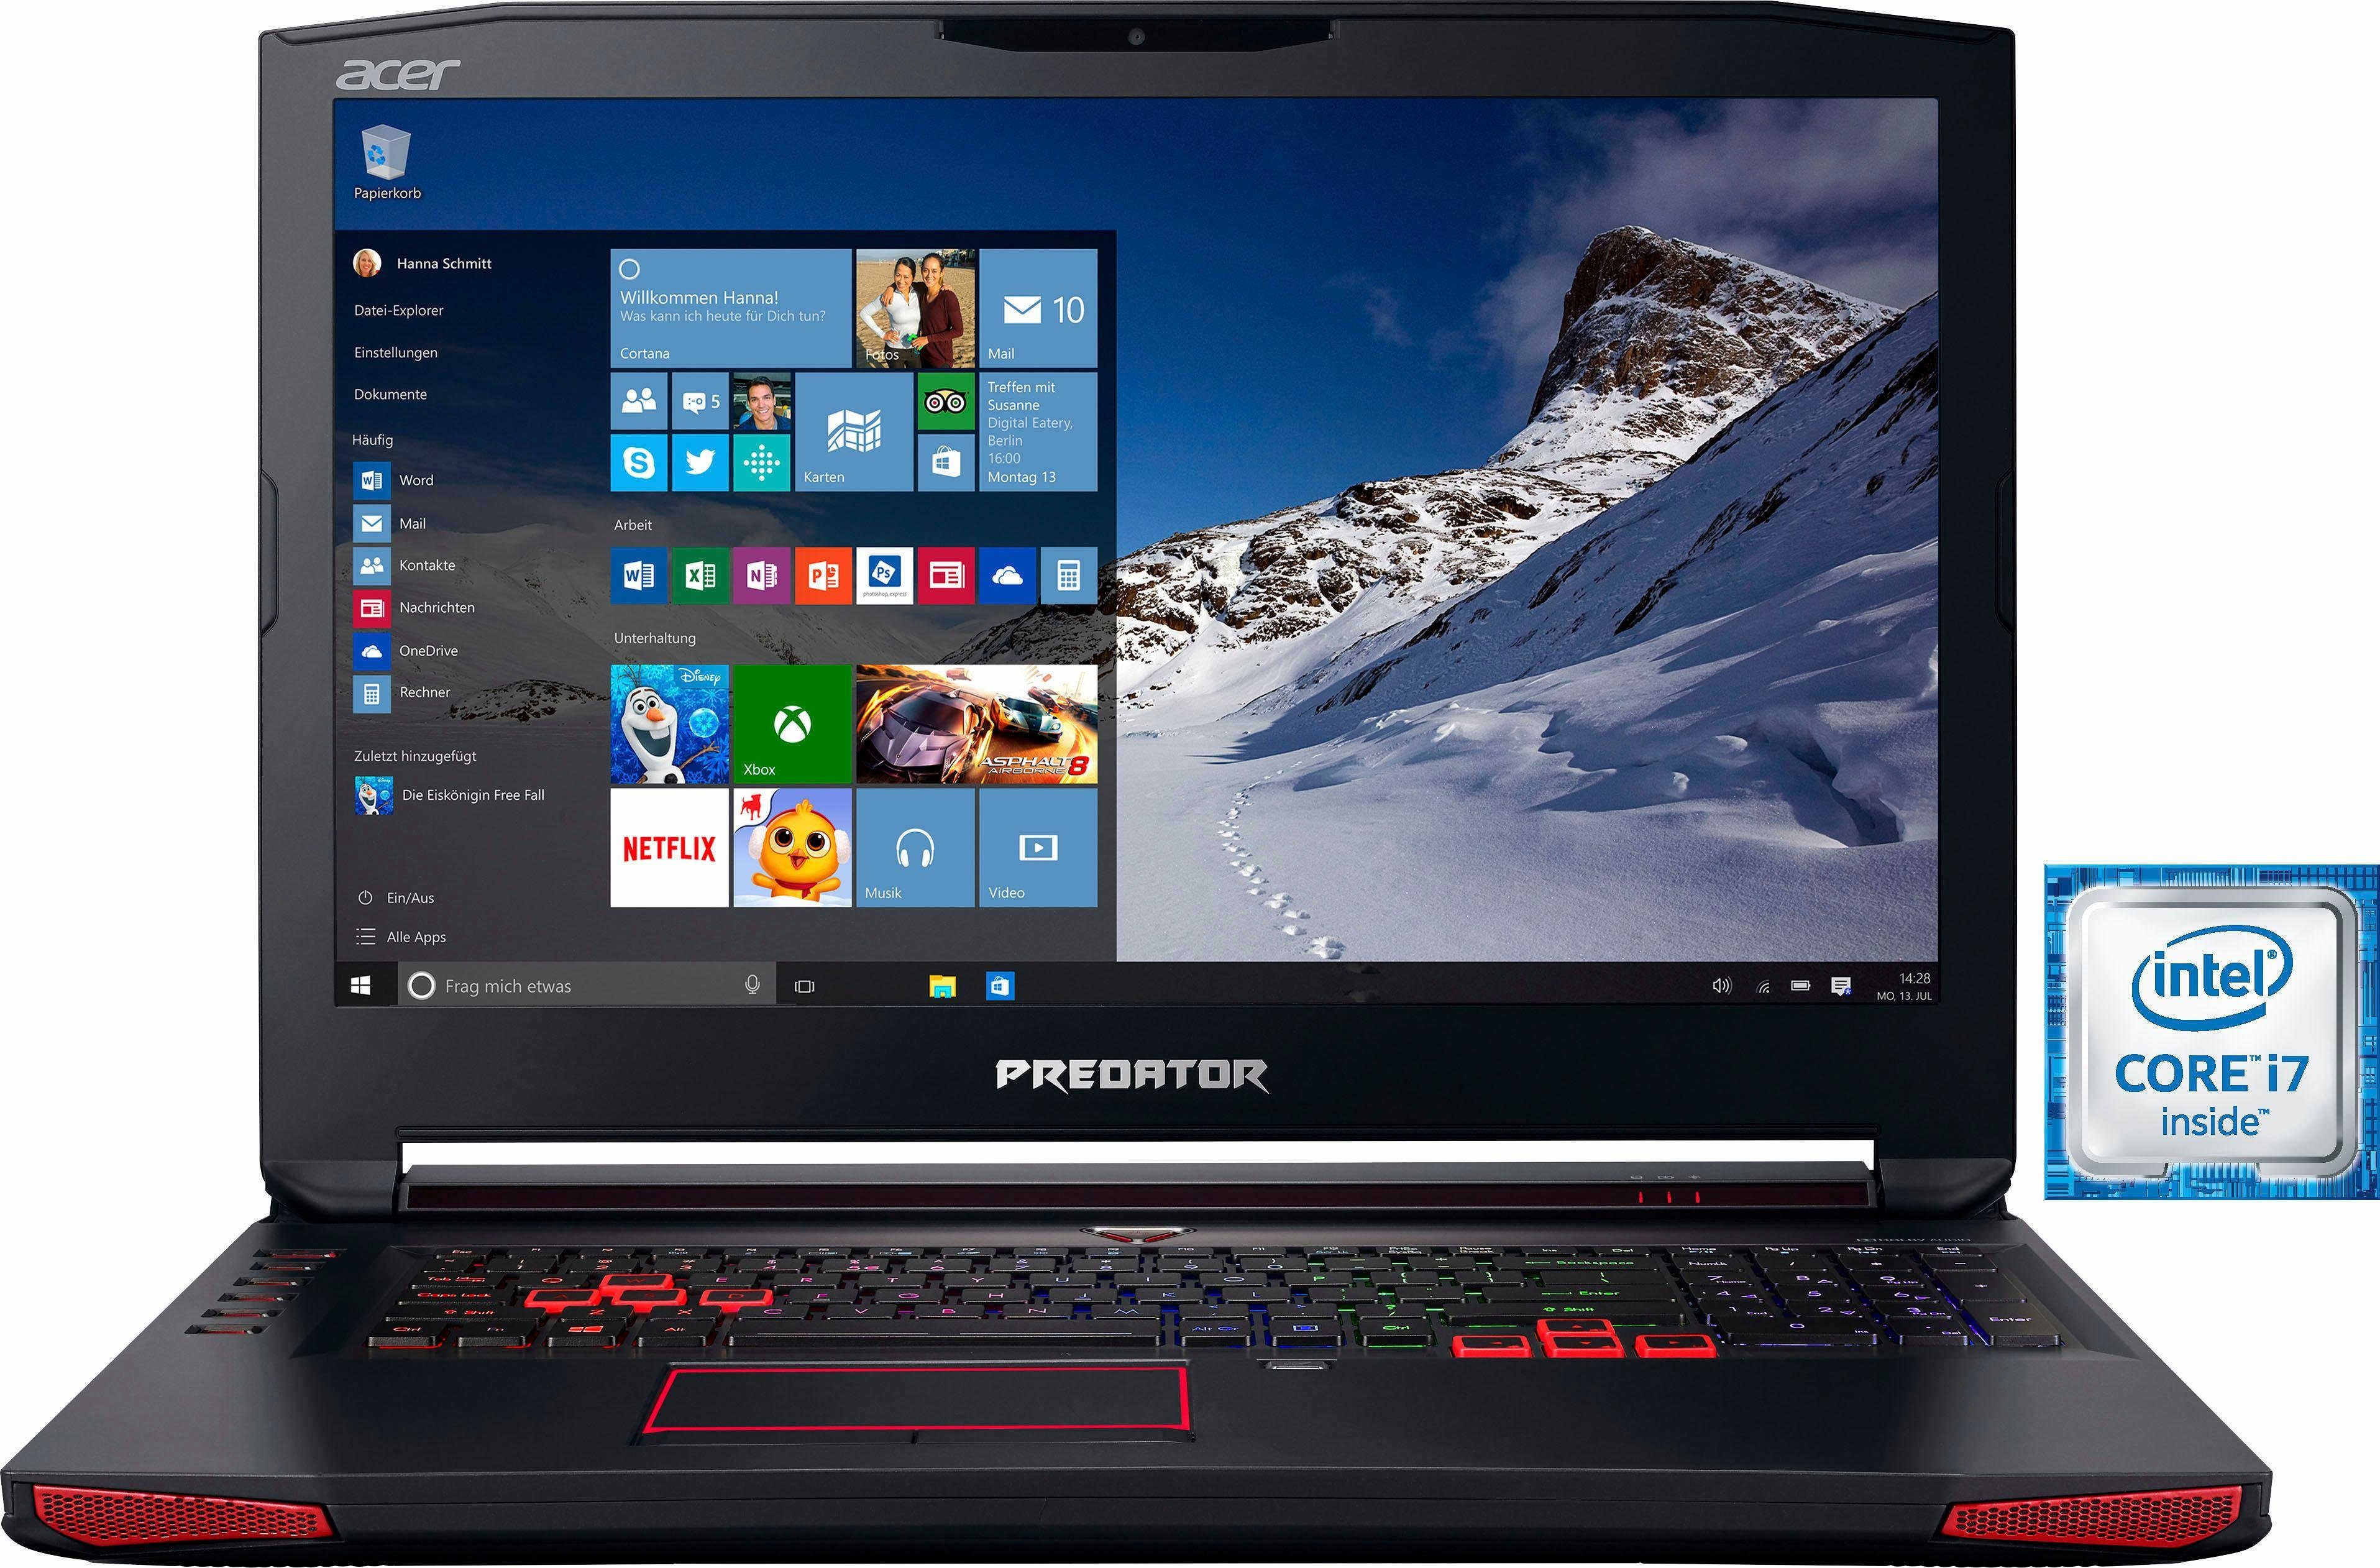 Acer Predator 17 (G9-793-72AT) Notebook, Intel® Core™ i7, 43,9 cm (17,3 Zoll), 1512 GB Speicher